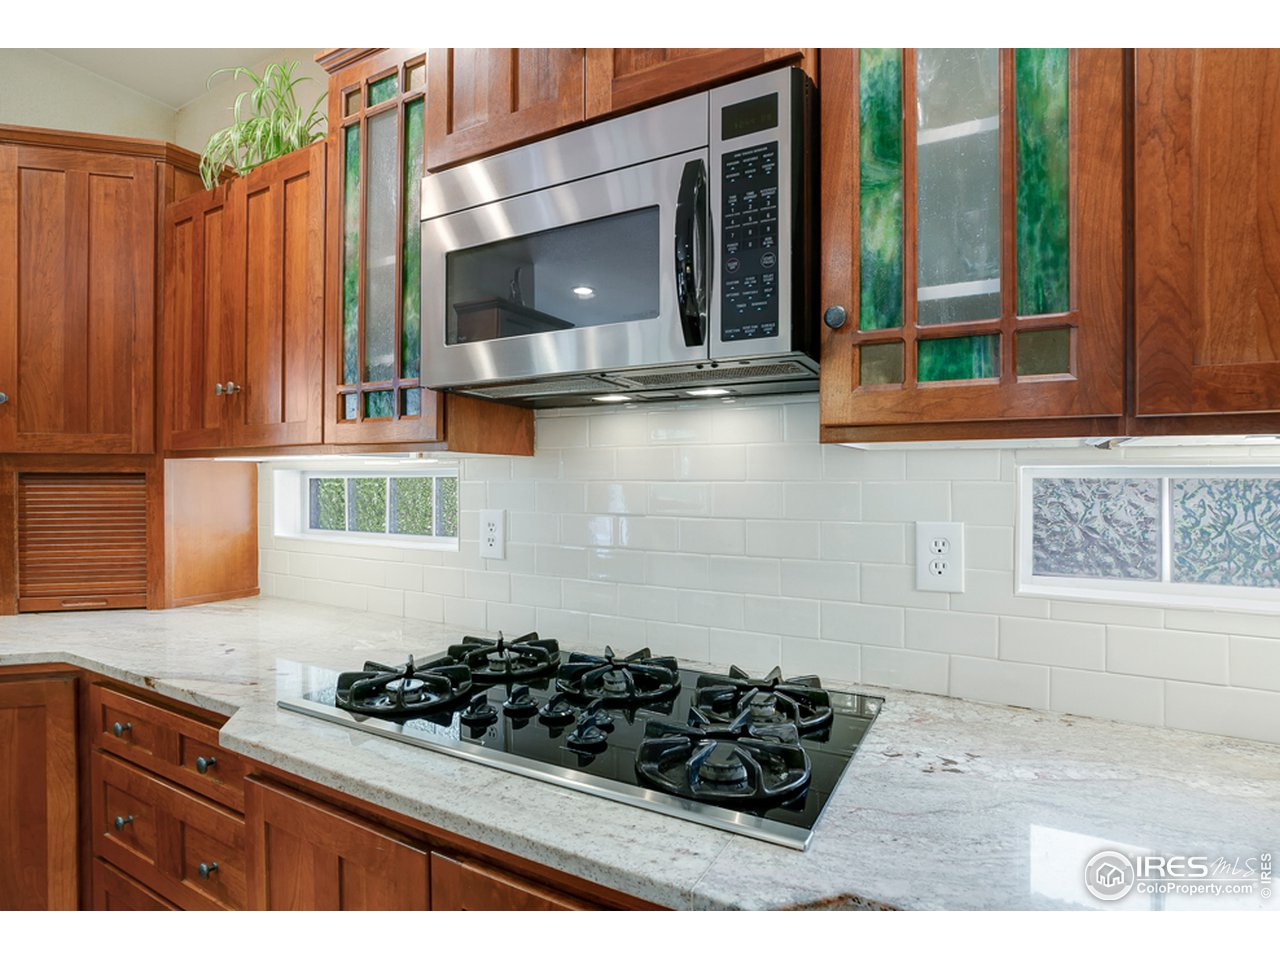 Gas range that vents to the exterior and stunning stained glass detail in the upper cabinets